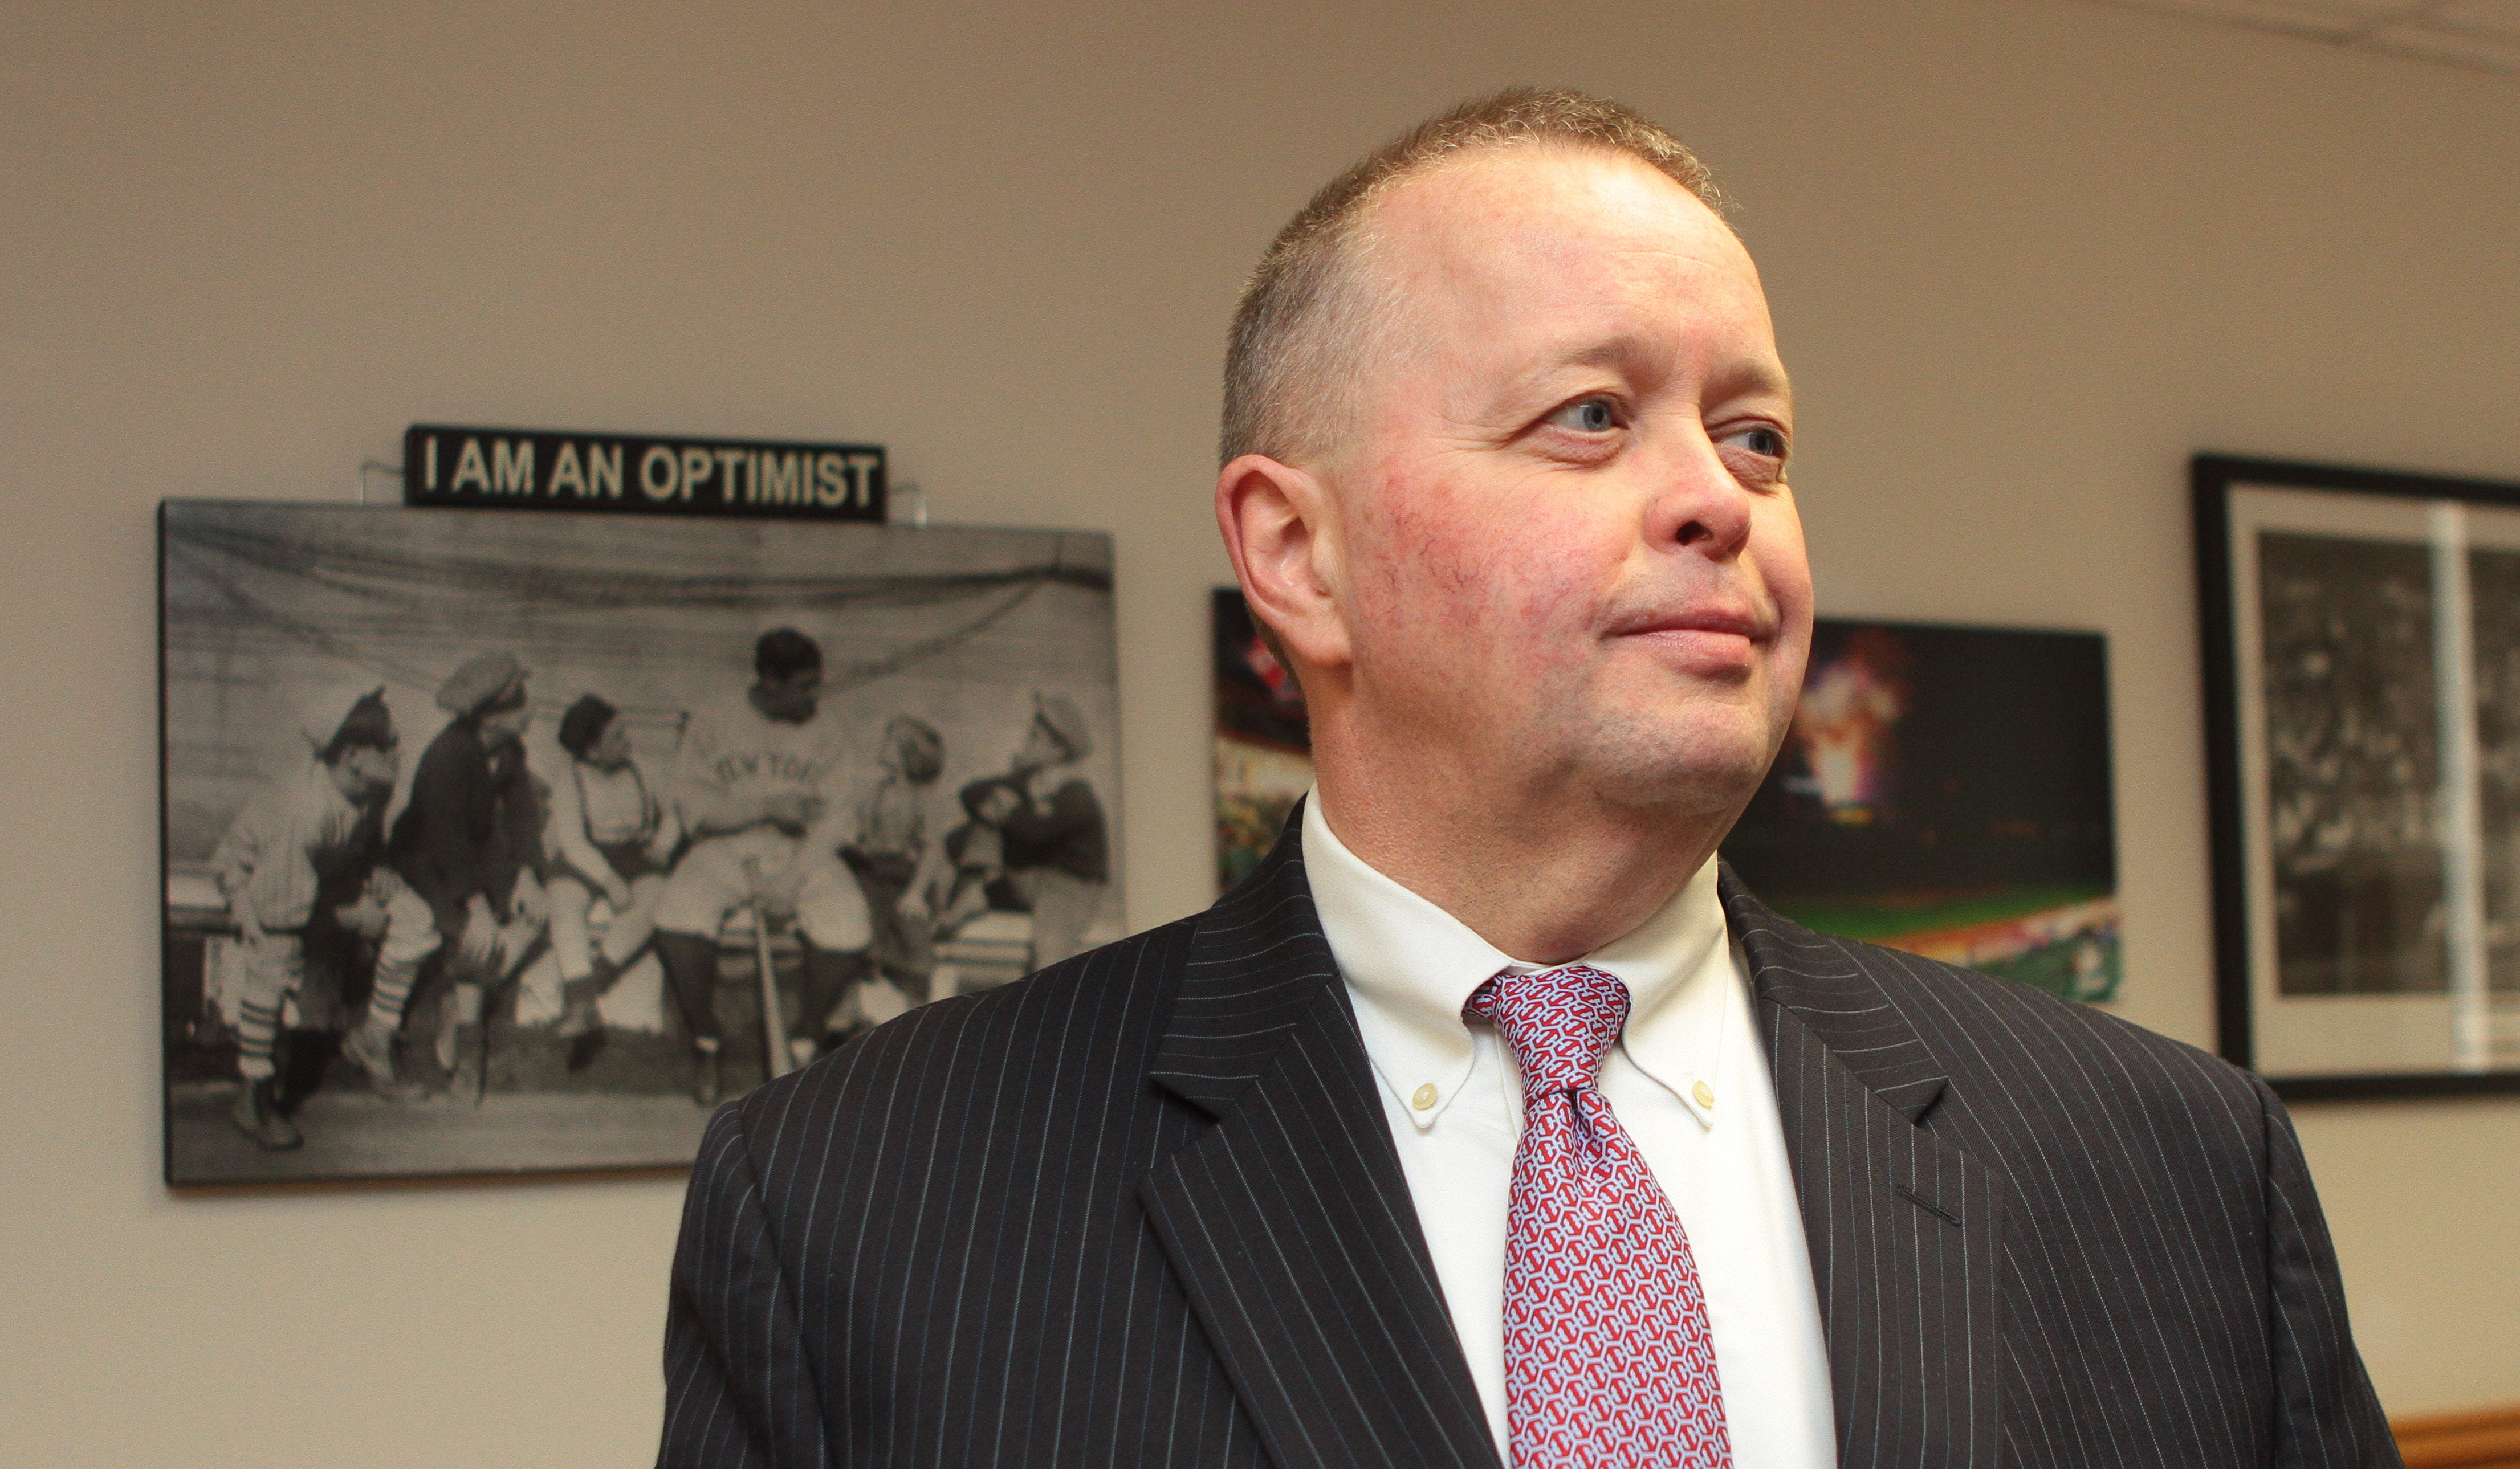 Ramapo Police Chief Brad Weidel, pictured at his 2016 swearing-in, was paid $639,504 during his final year on the job, which included payouts for unused time of $261,476.